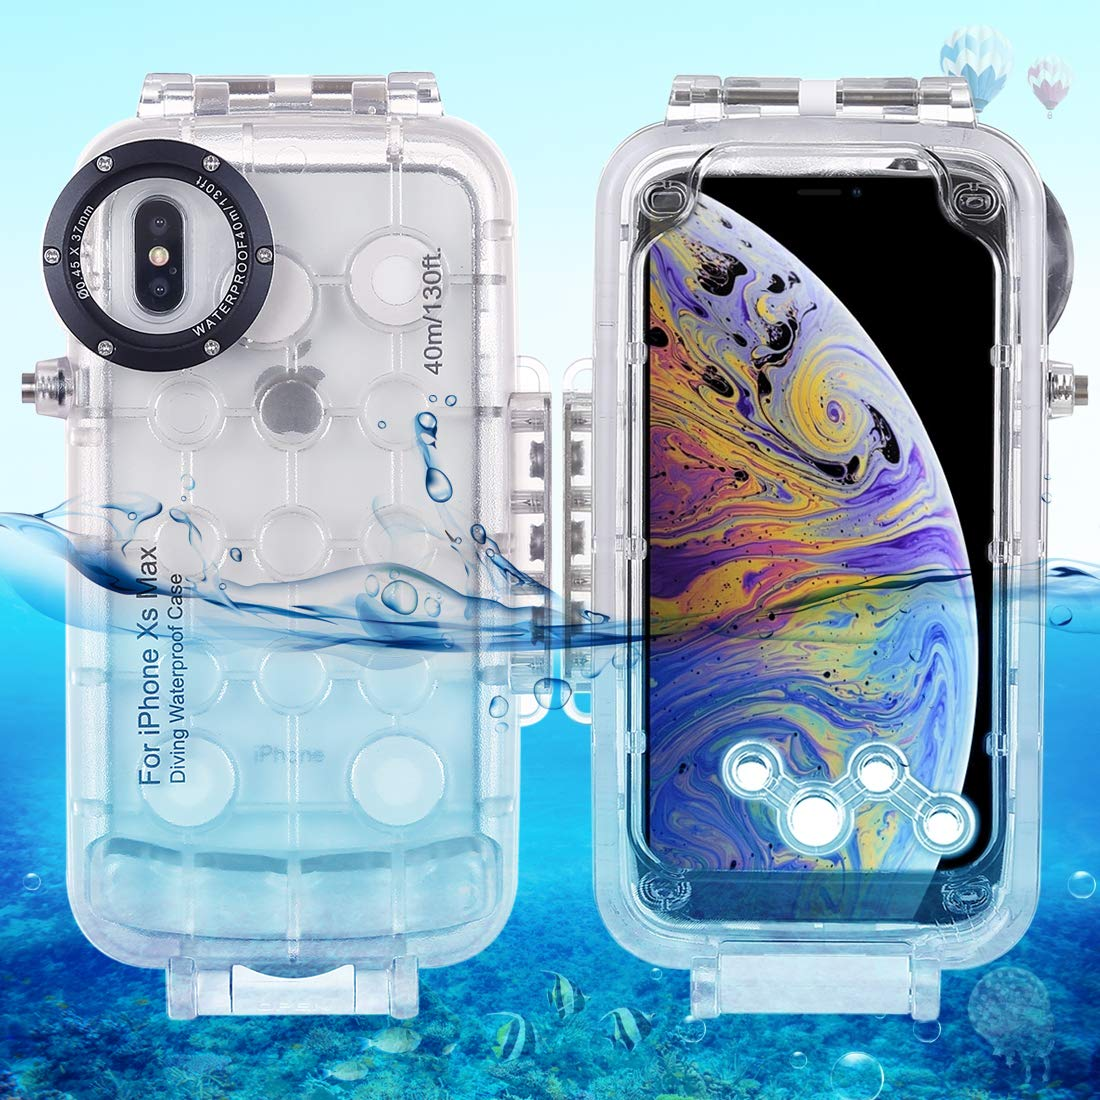 HAWELL iPhoneXS MAX Diving Case, Professional [40m/130ft] Surfing Swimming Snorkeling Photo Video Waterproof Protective Case Underwater Housing for iPhone with Lanyard by Hawell